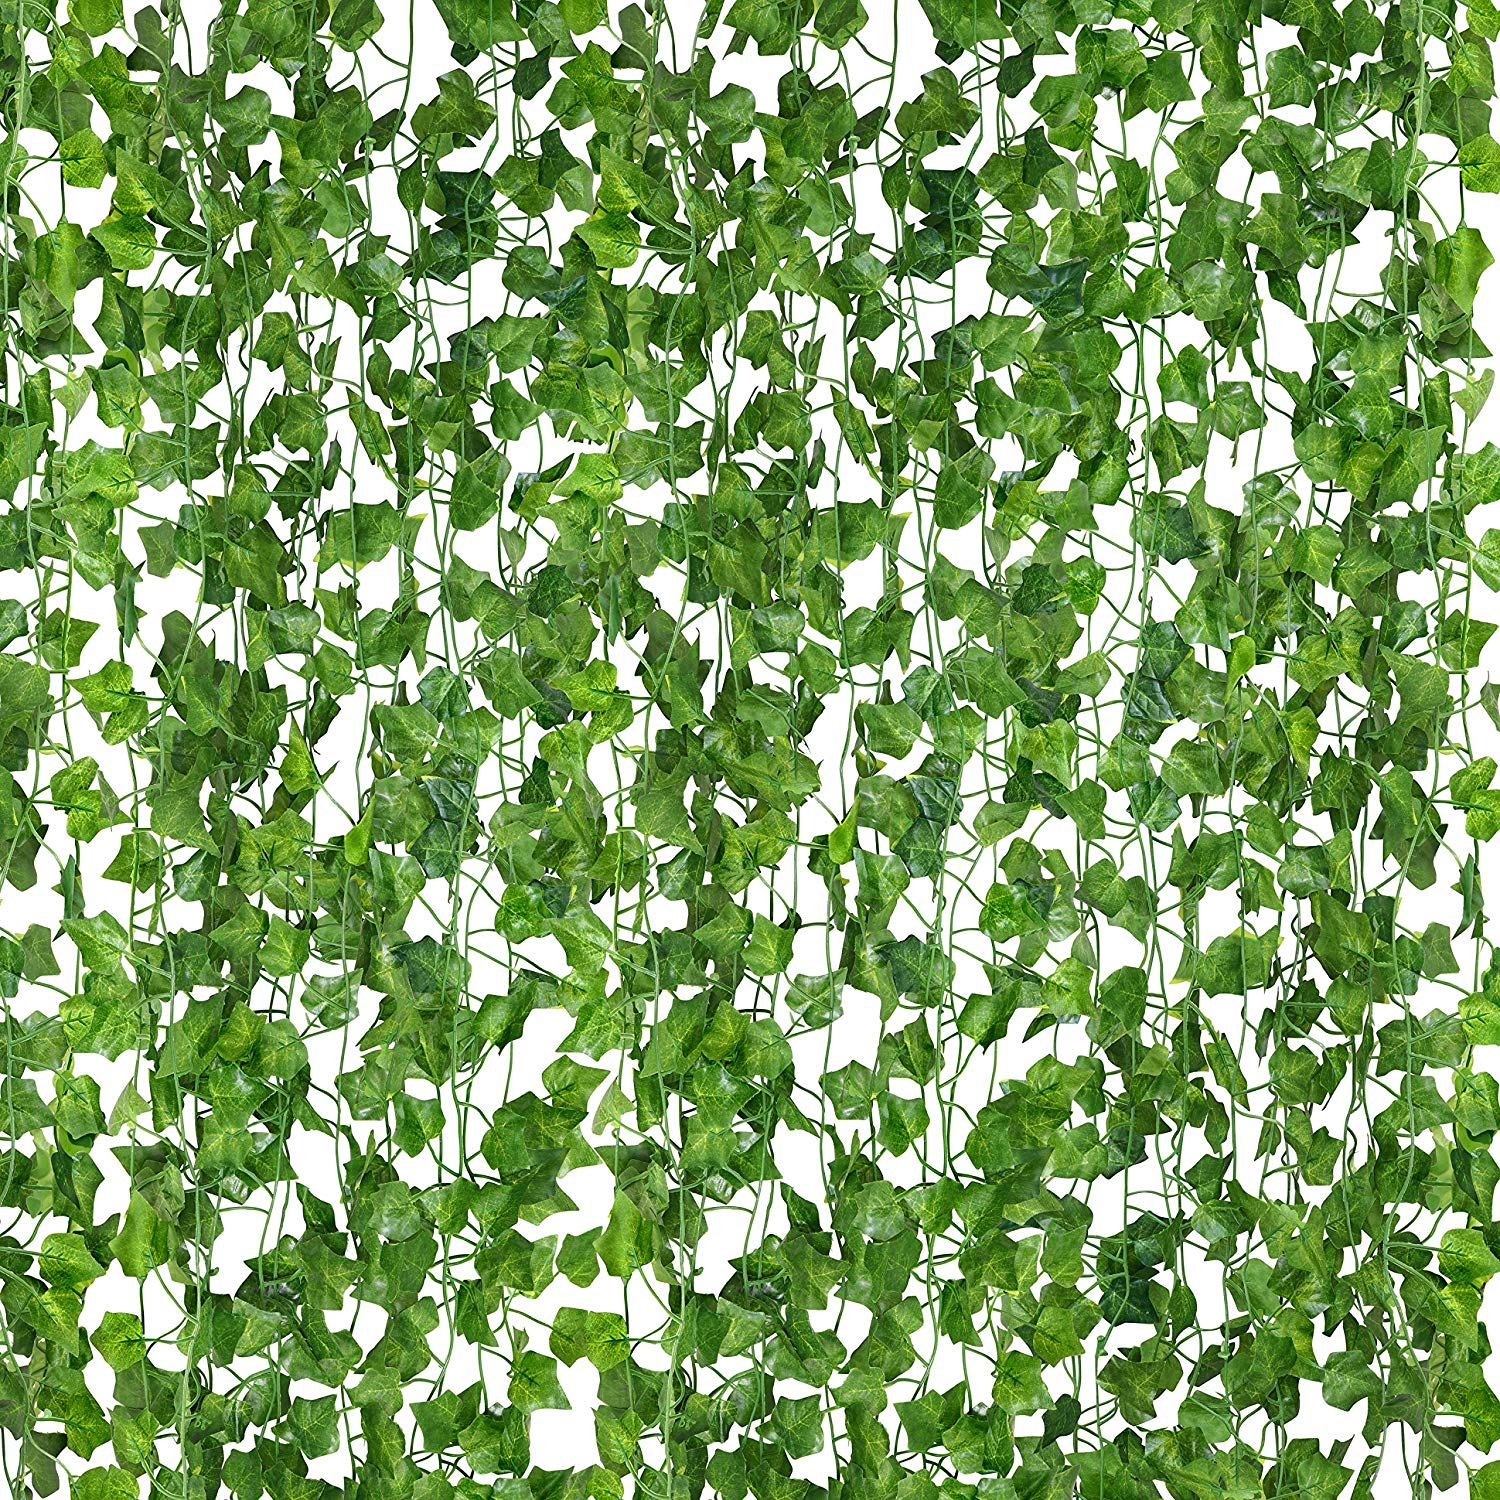 Fake Vines, 84 Ft-12 Strands Garland Greenery Artificial Ivy Hanging Leaves for Garden, Home, Wedding and Jungle Decorations